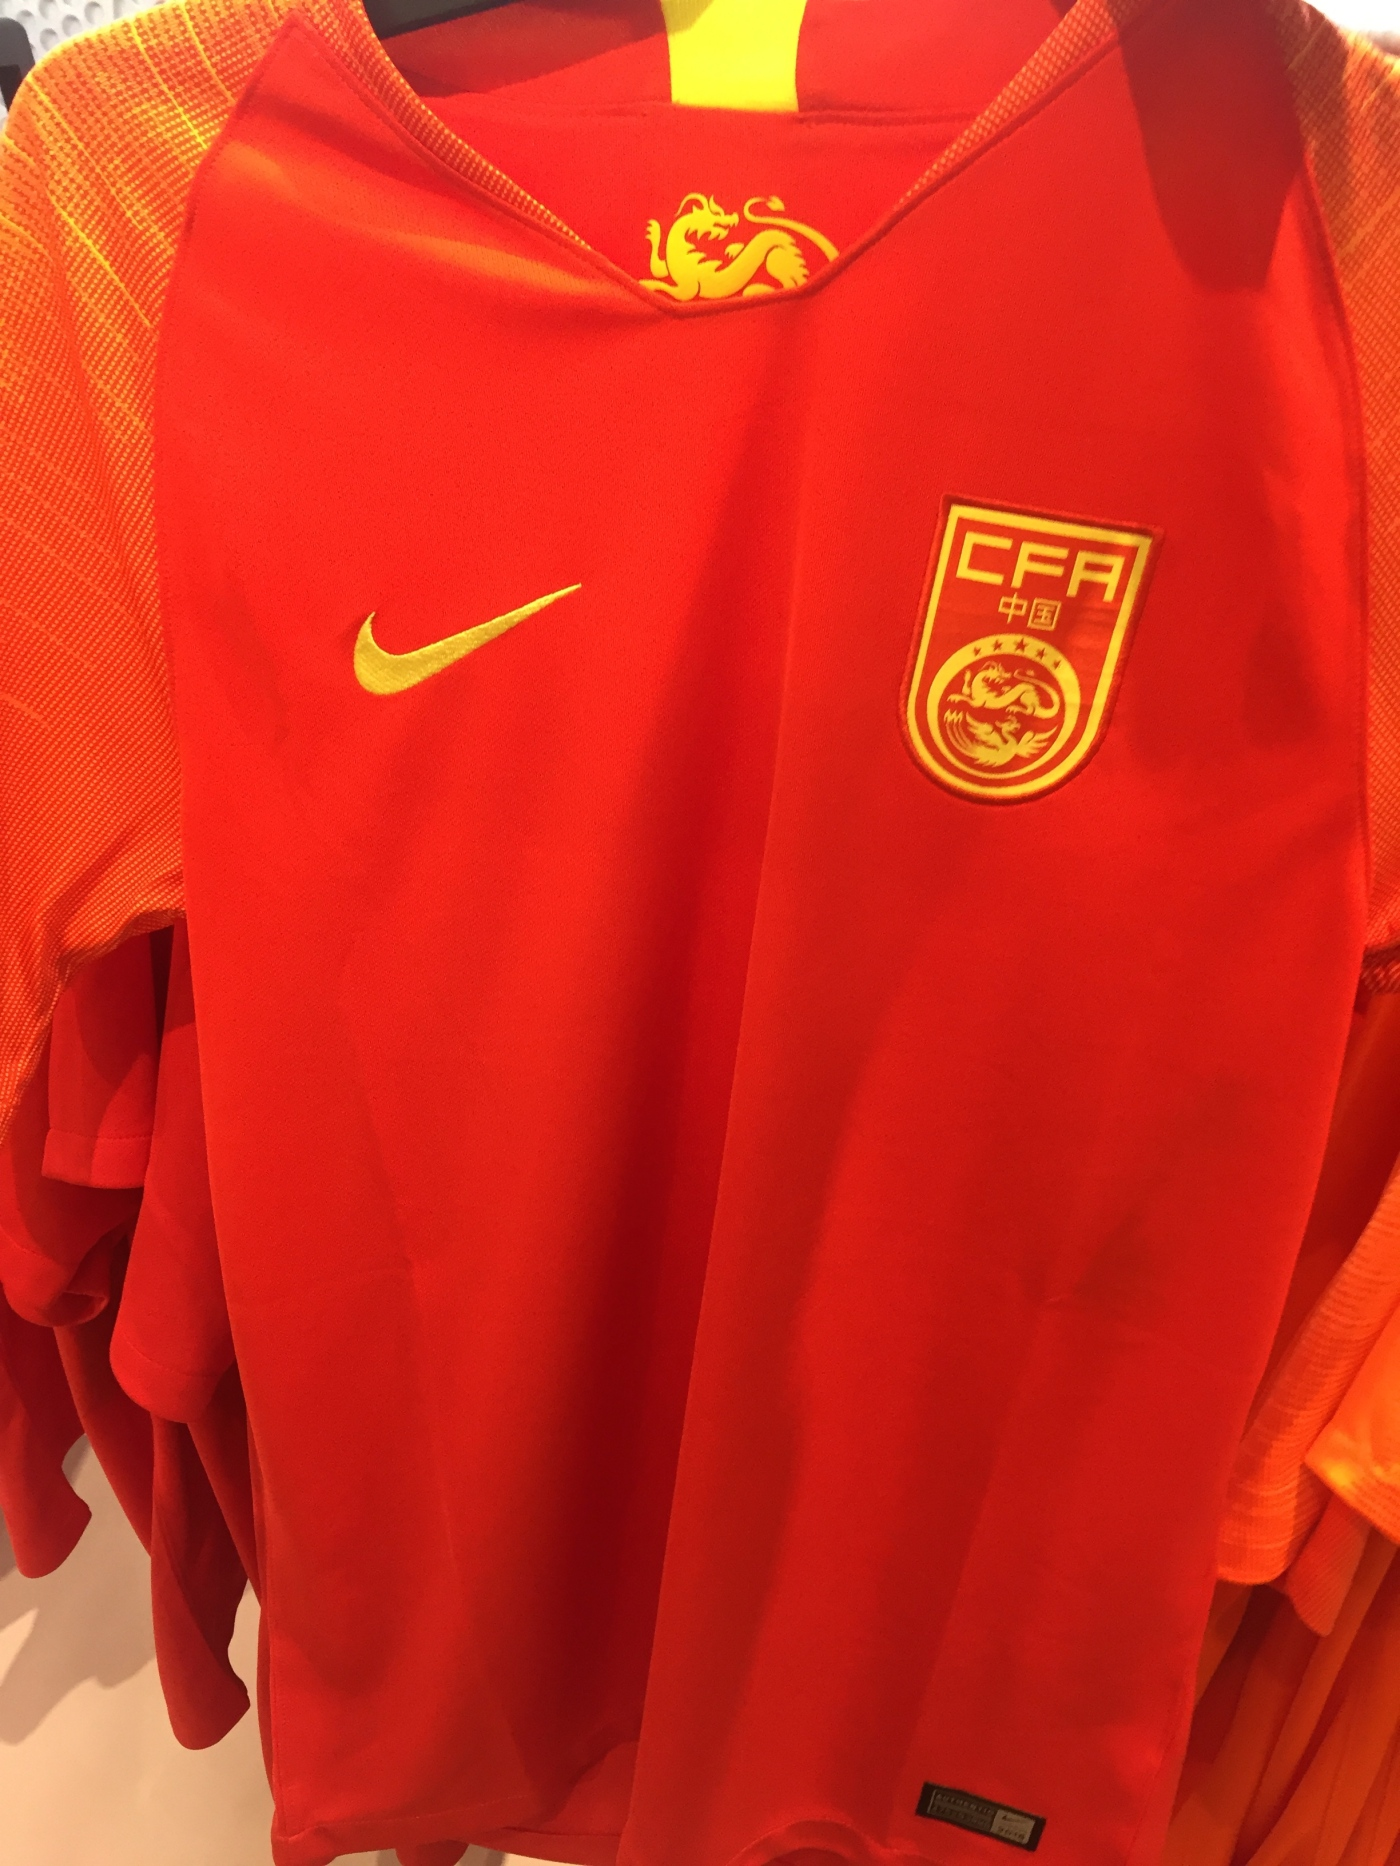 buy online a20f7 78d09 Nike Non-World Cup Jerseys: 2018 China Home Kit – New Shark City